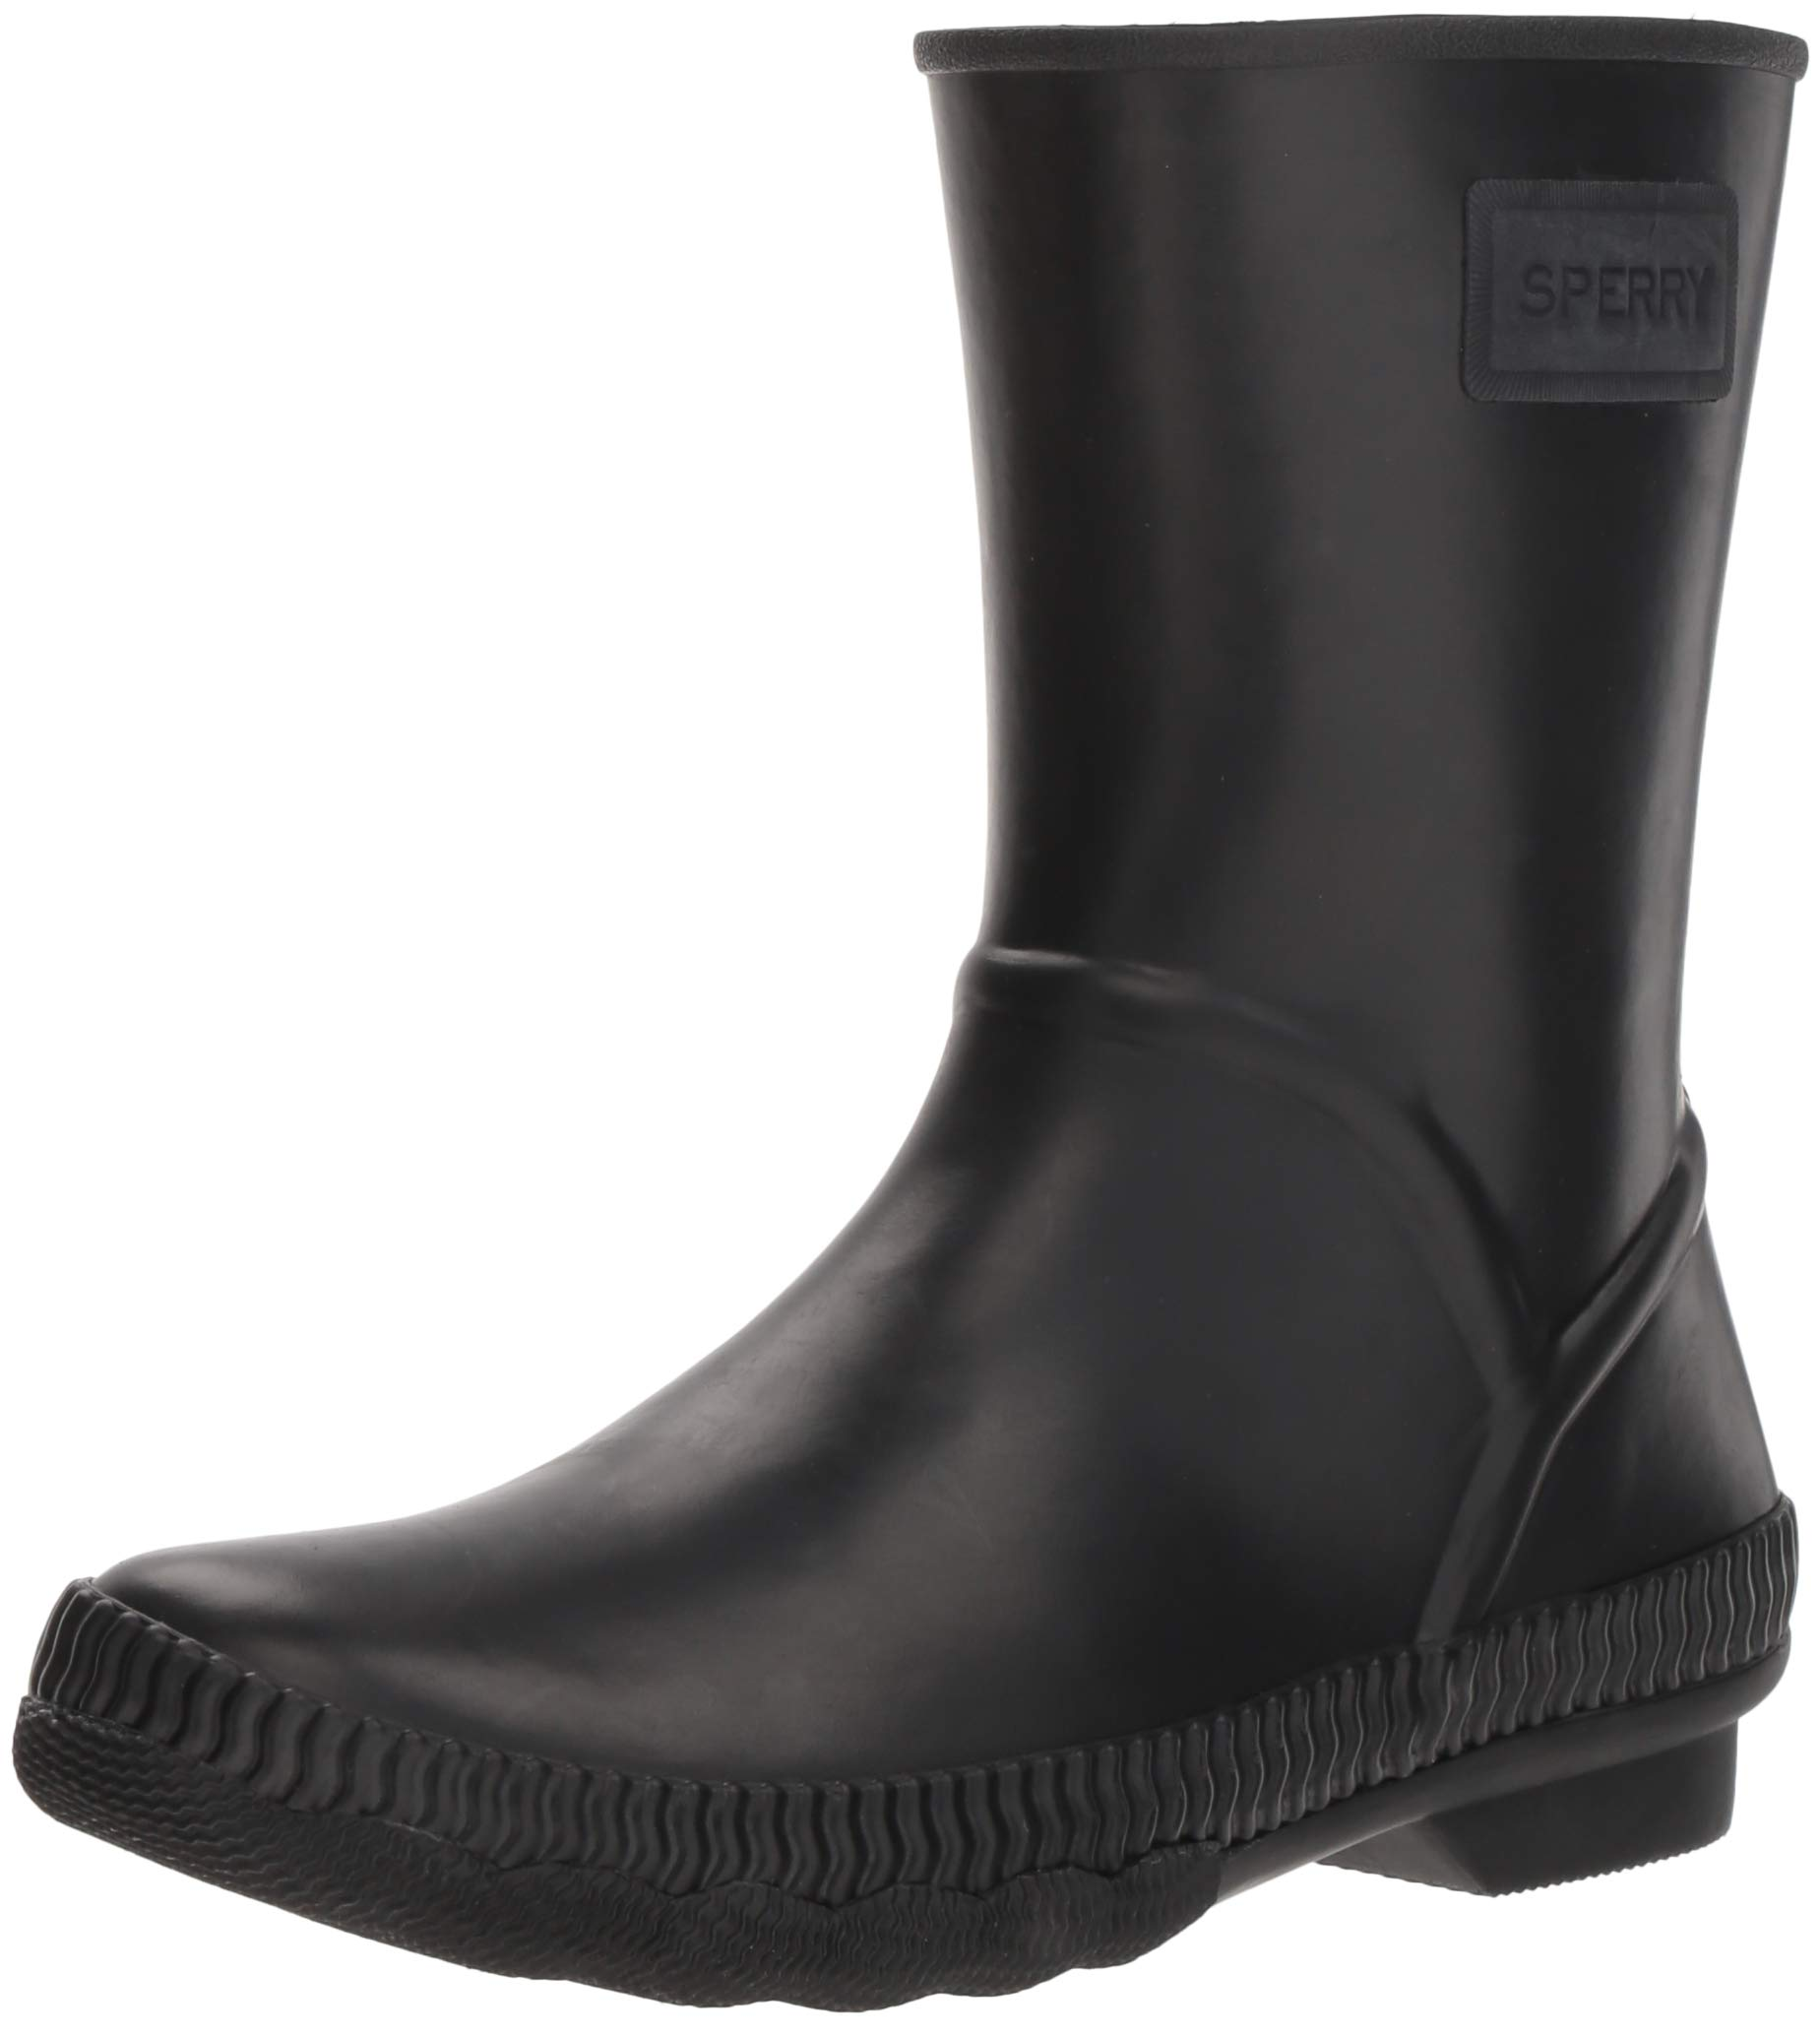 SPERRY Women's Saltwater Current Rain Boot, Black, 8.5 by SPERRY